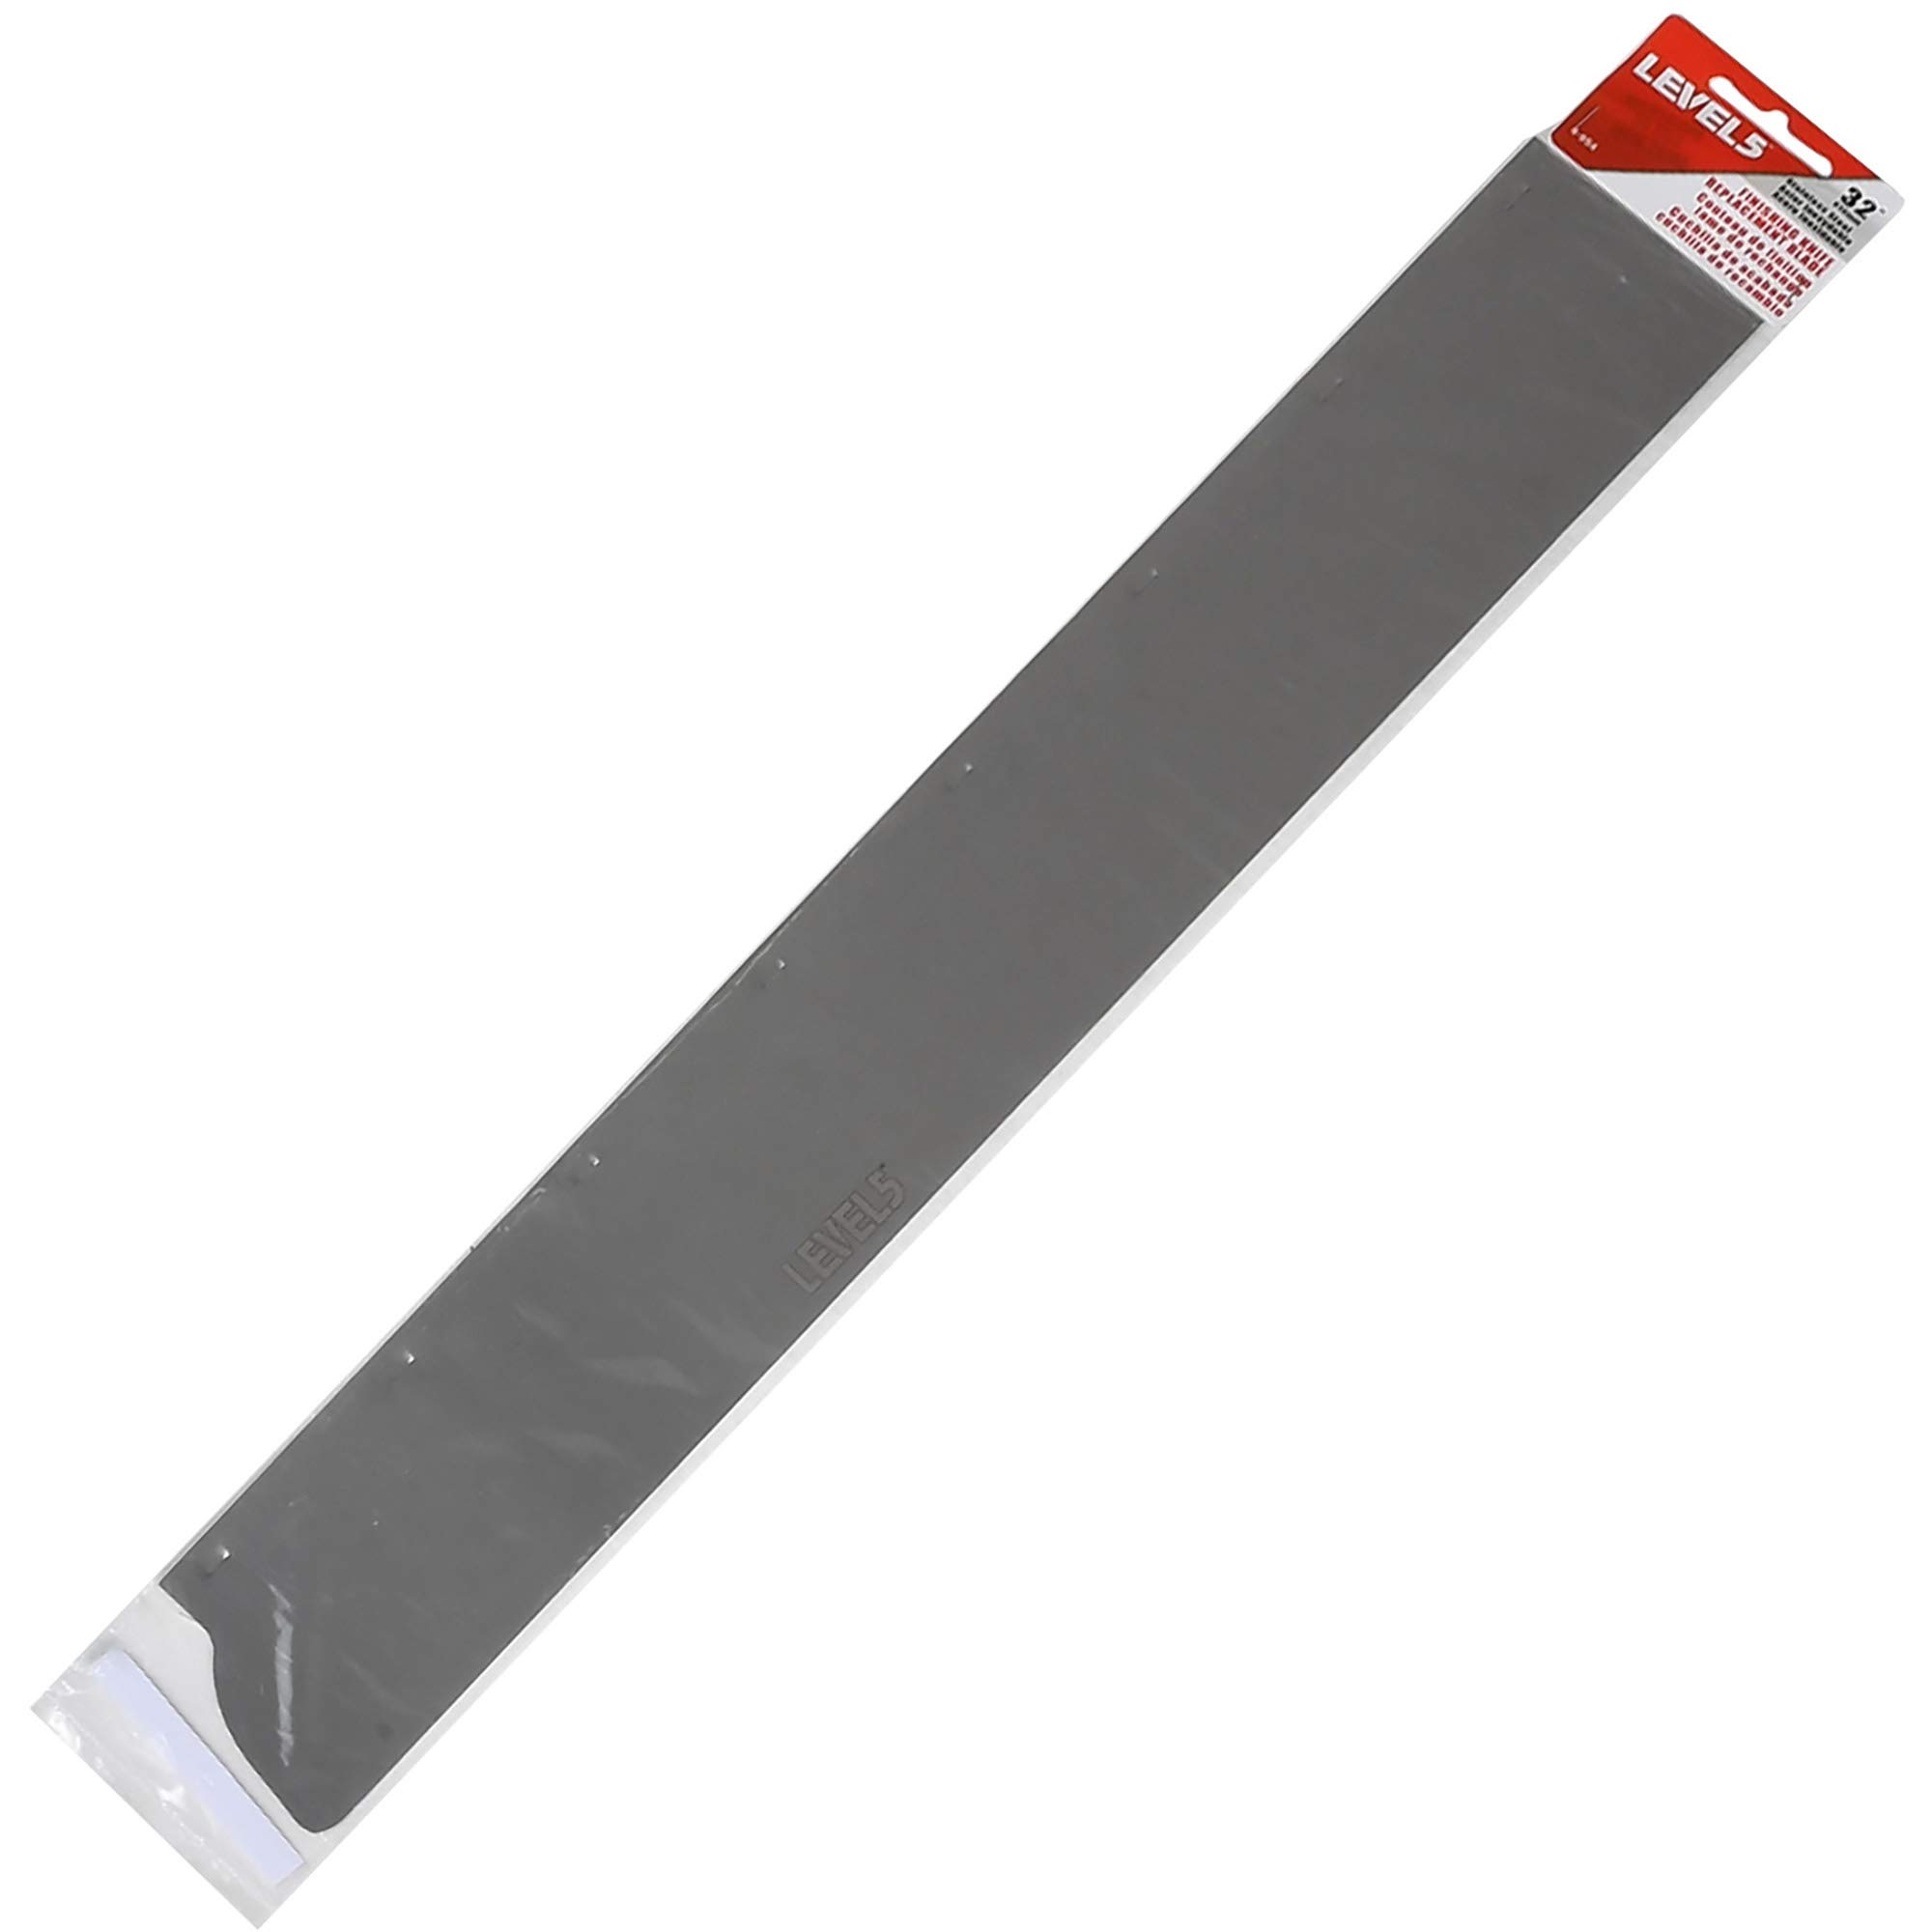 32'' Replacement Skimming Blade Insert - LEVEL5 by Level5 (Image #1)